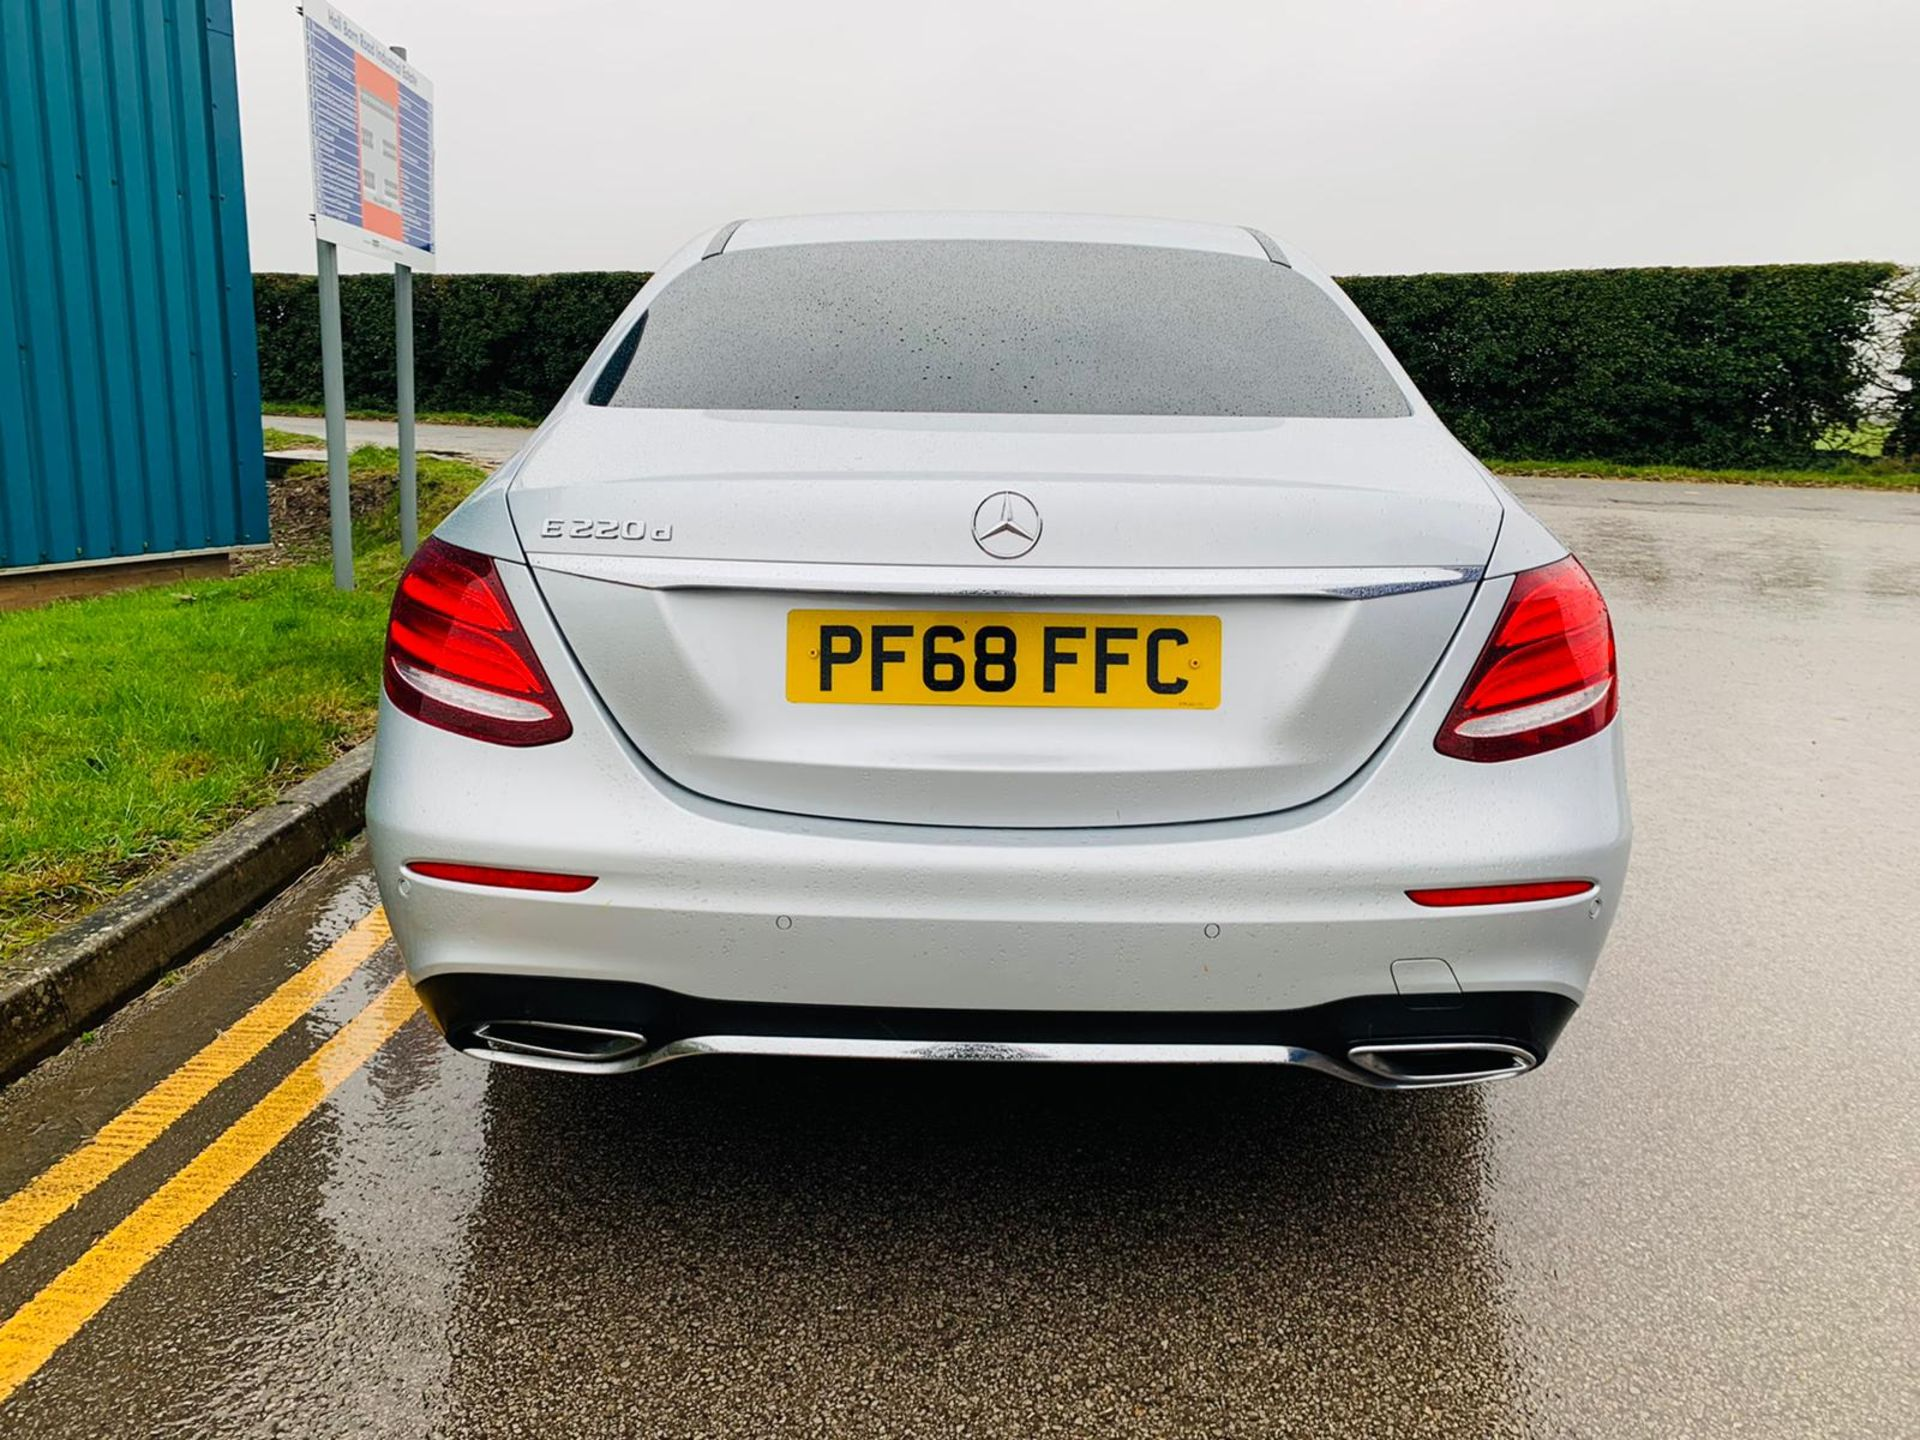 (Reserve Met)Mercedes E220d AMG Line Auto 9G Tronic - 2019 Reg - Reversing Cam - 1 Owner From New - Image 9 of 30